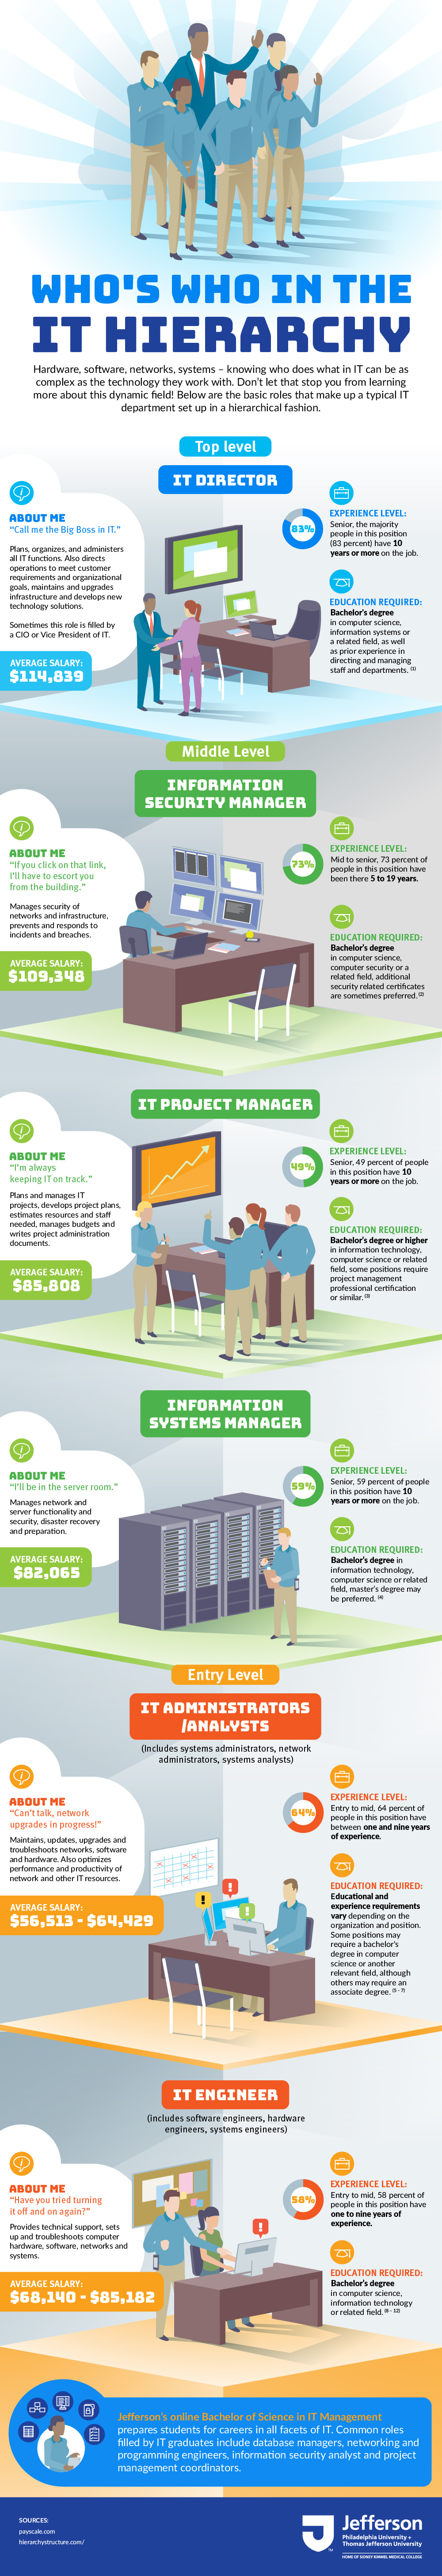 Infographic depicting job titles, descriptions, and salaries for various roles in information technology